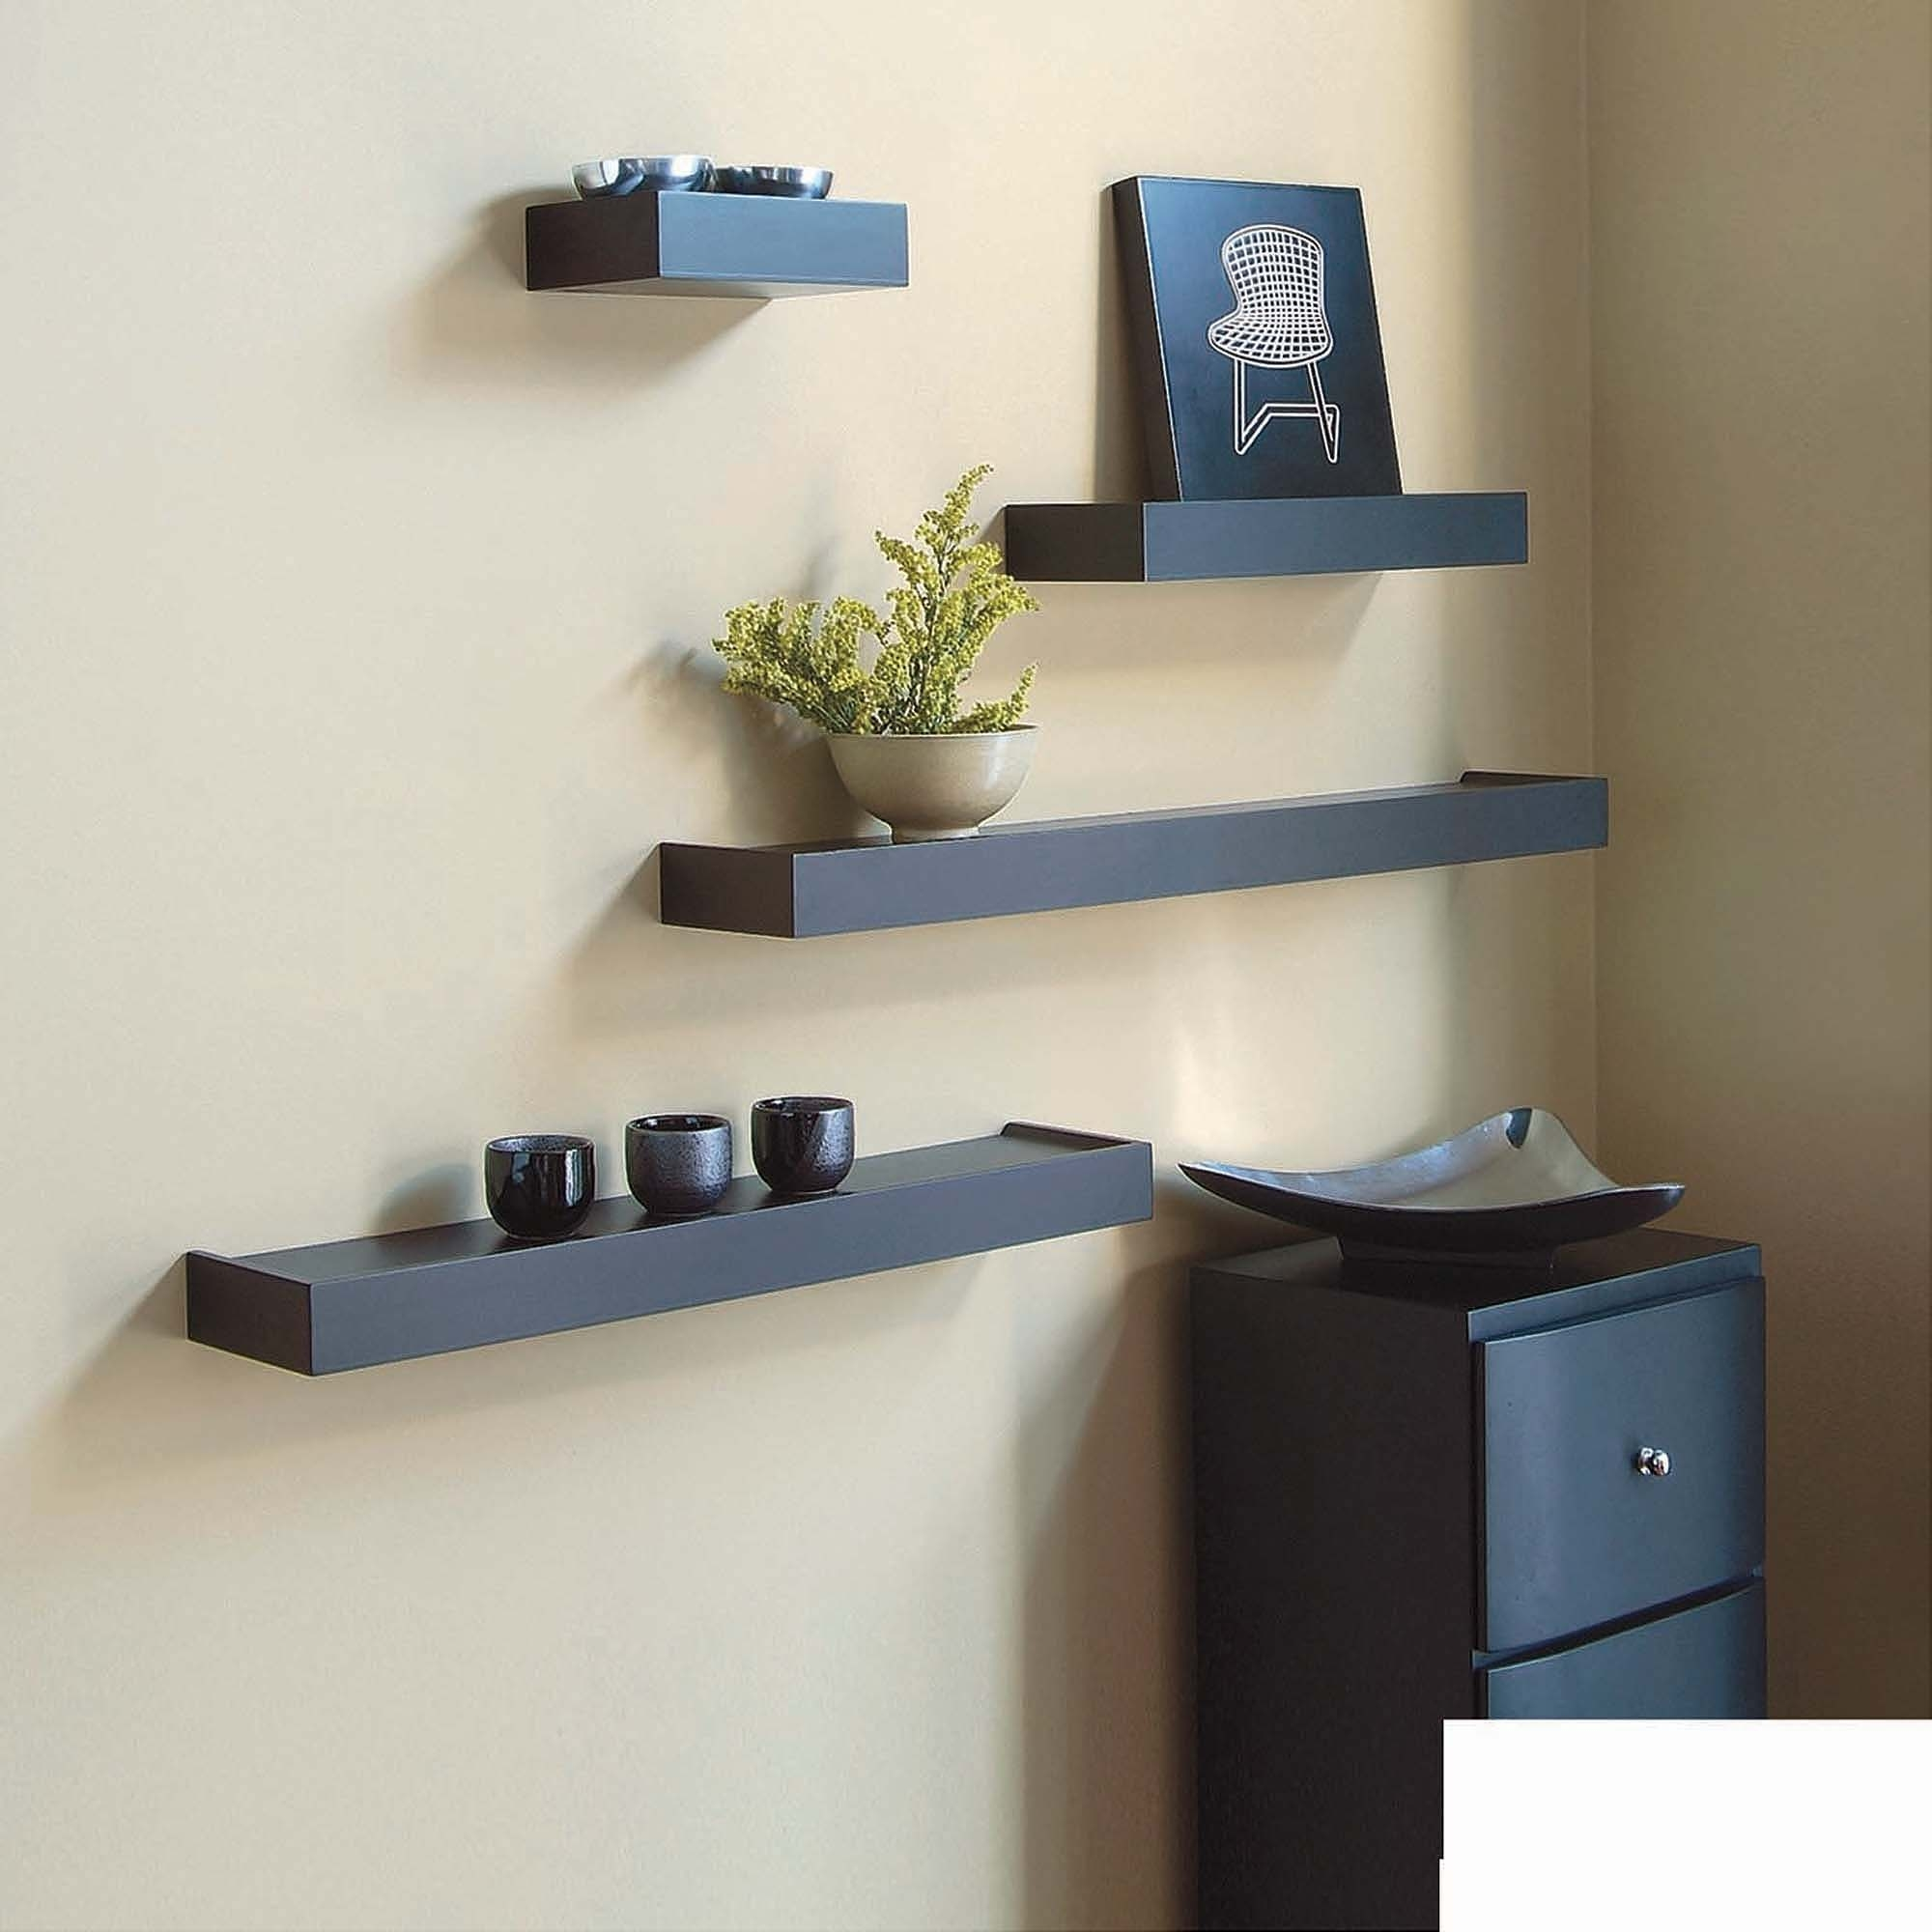 Wall Shelves Pertaining To Wall Shelves (#10 of 12)